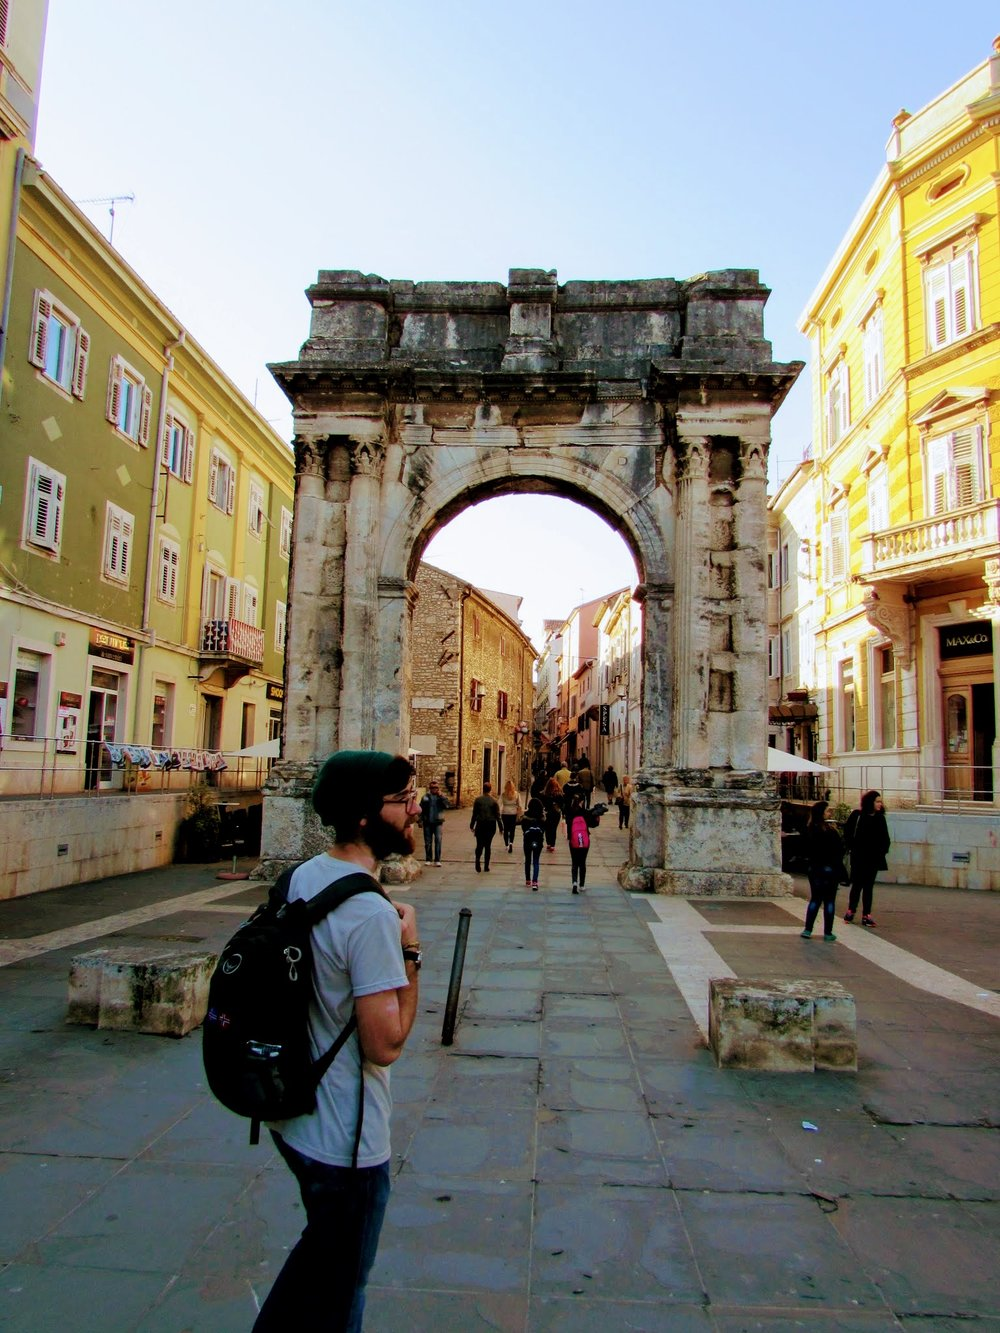 Emmett about to walk through the Arch of Sergii, a Roman triumphal arch in downtown Pula.